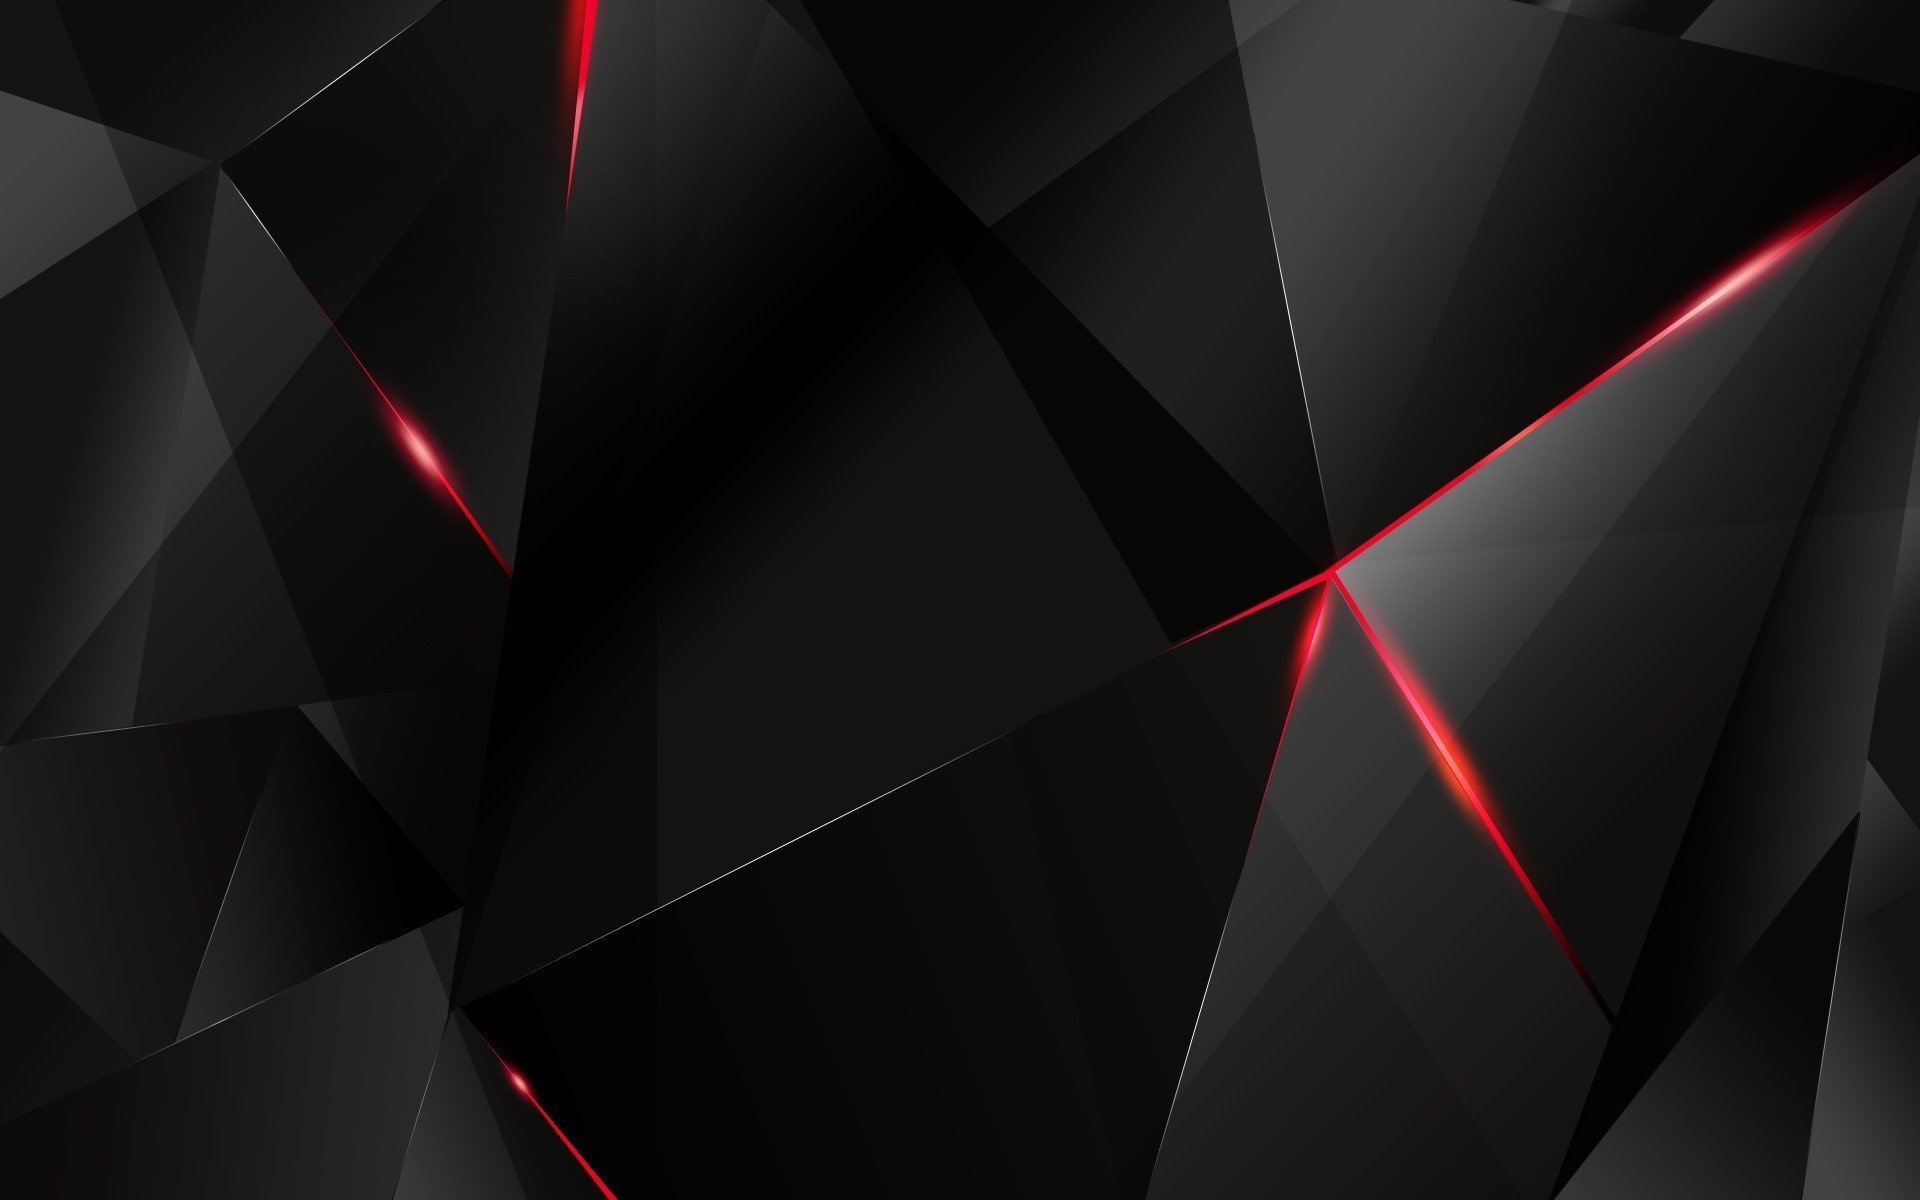 Red and Black PC Wallpaper - WallpaperSafari